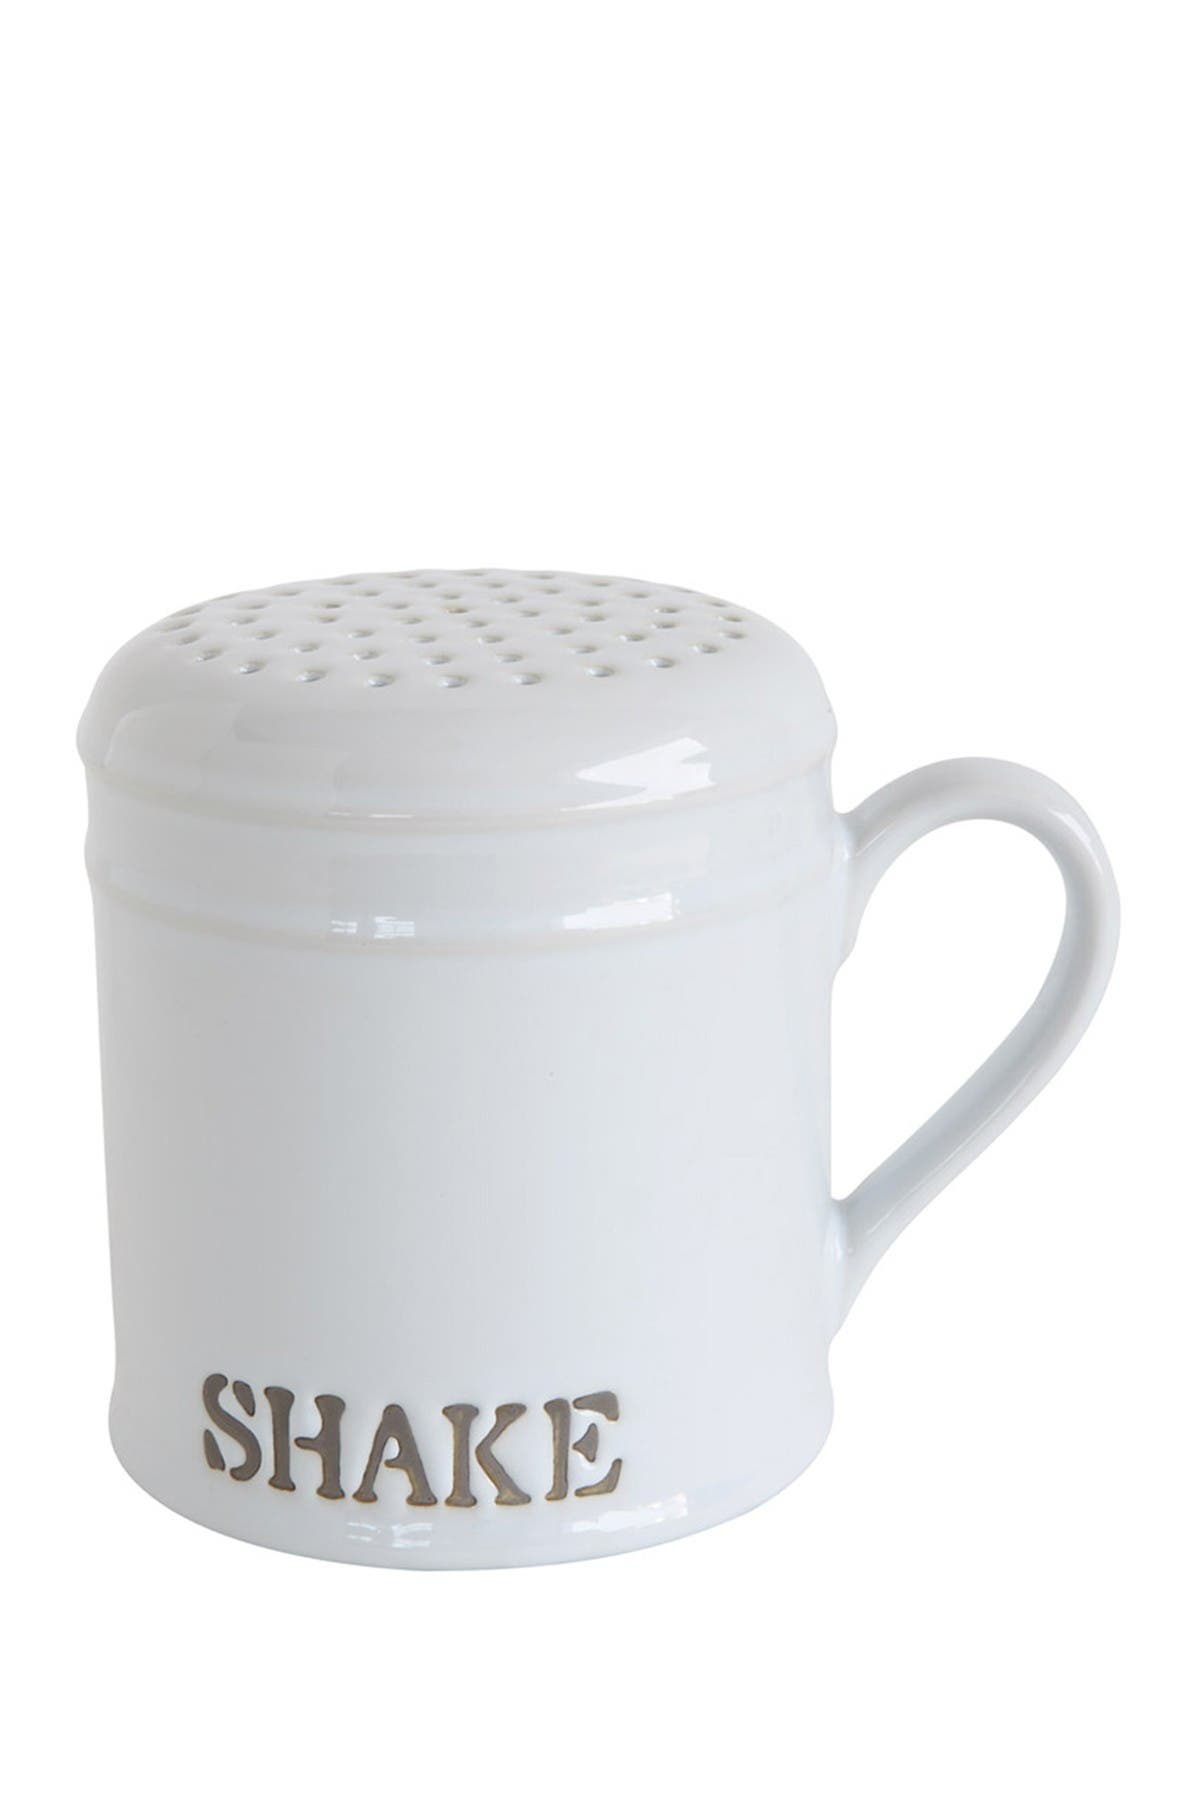 Image of Creative Co-op White Stoneware Kitchen Shaker